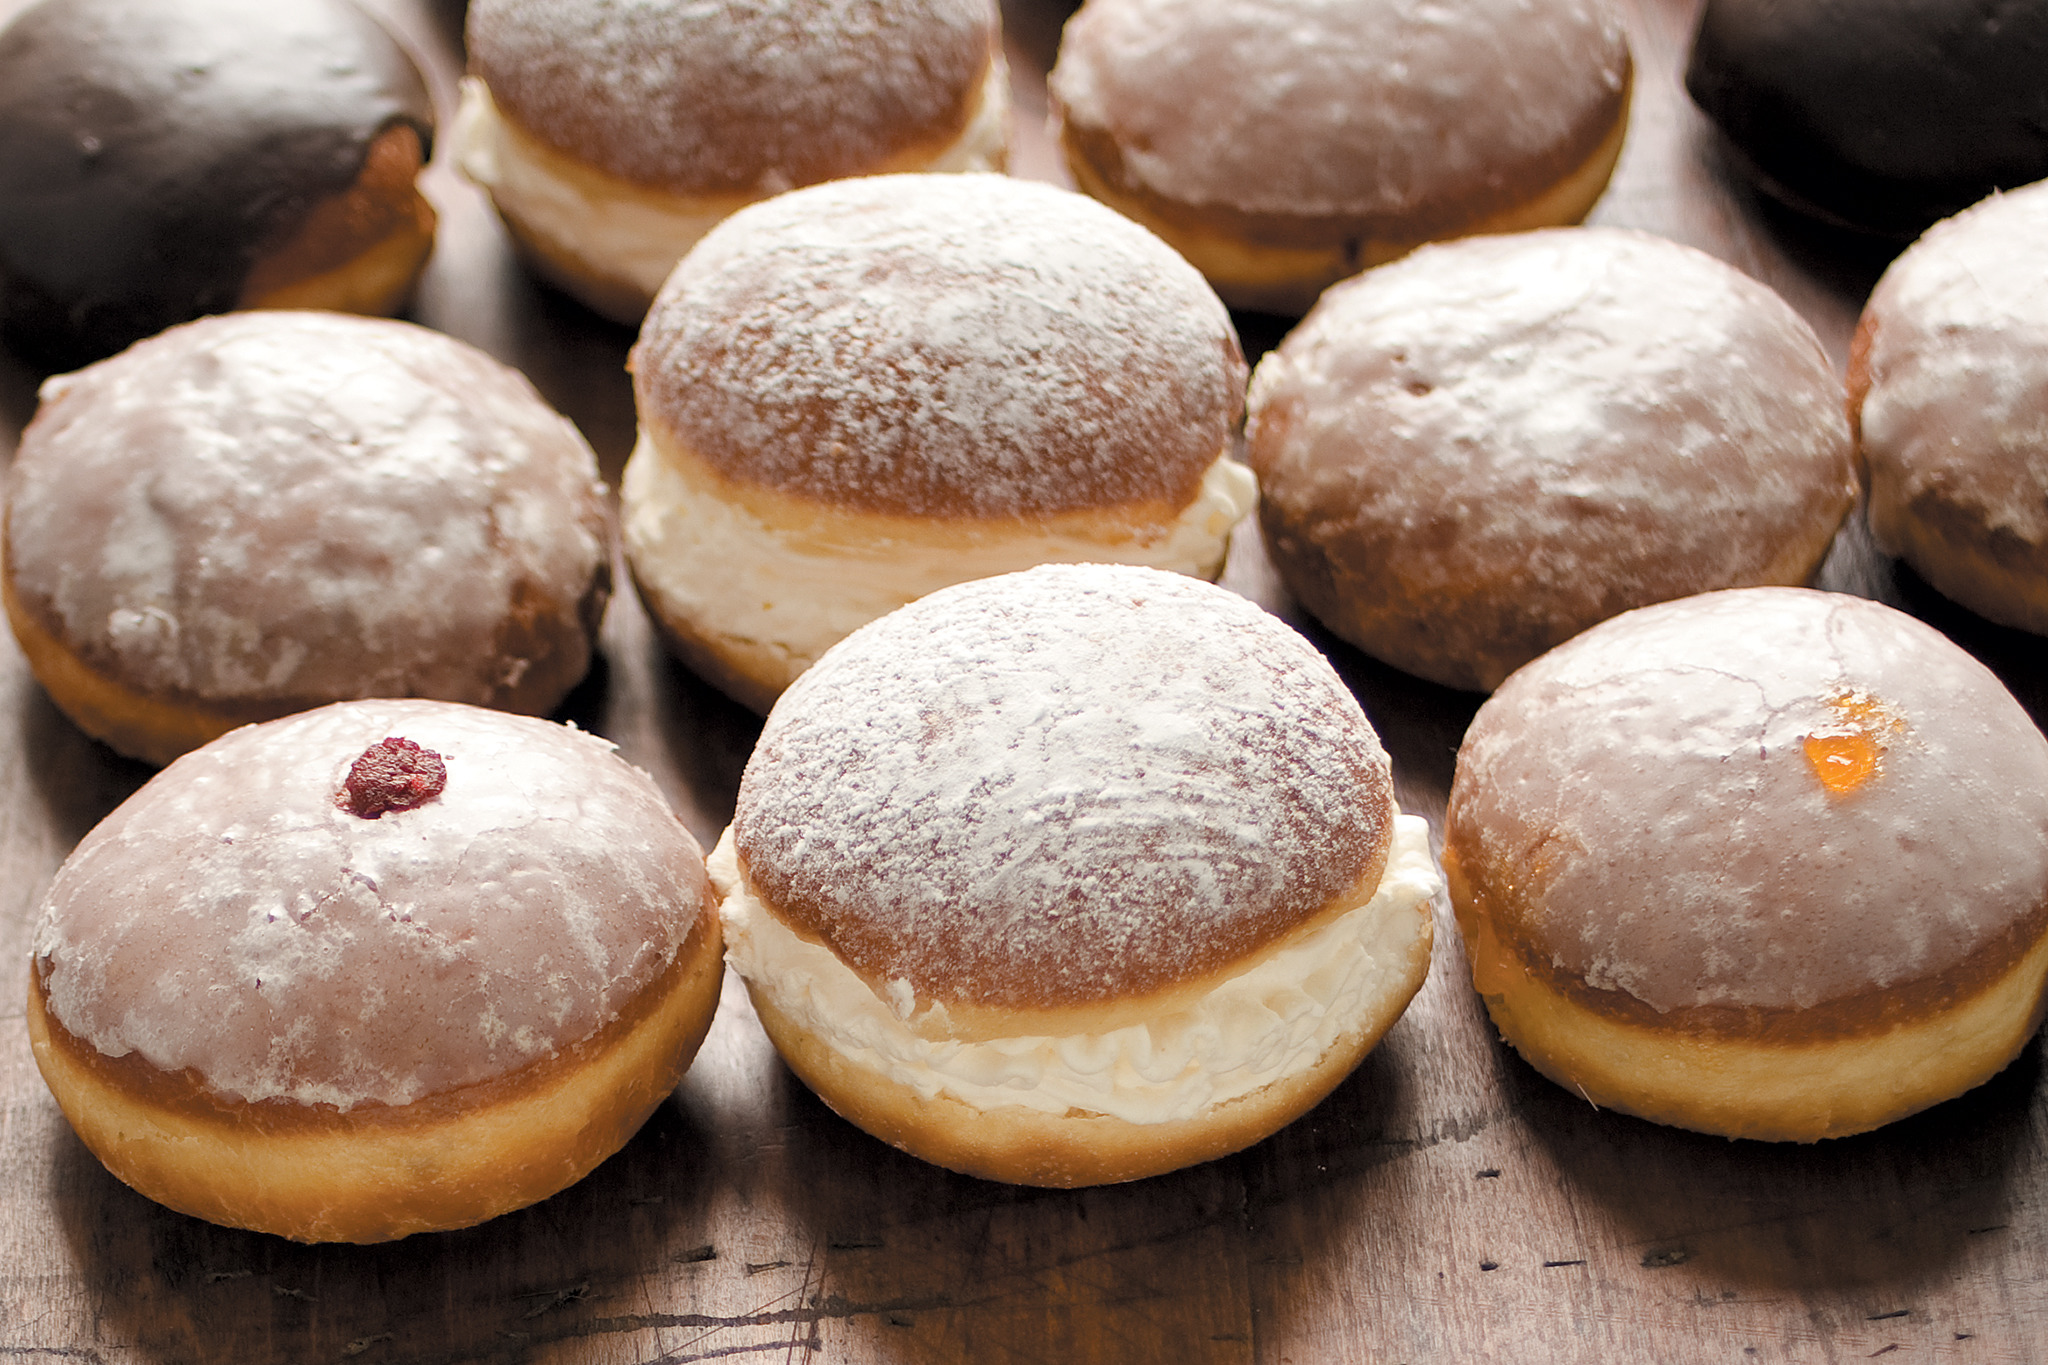 10 places to find paczki